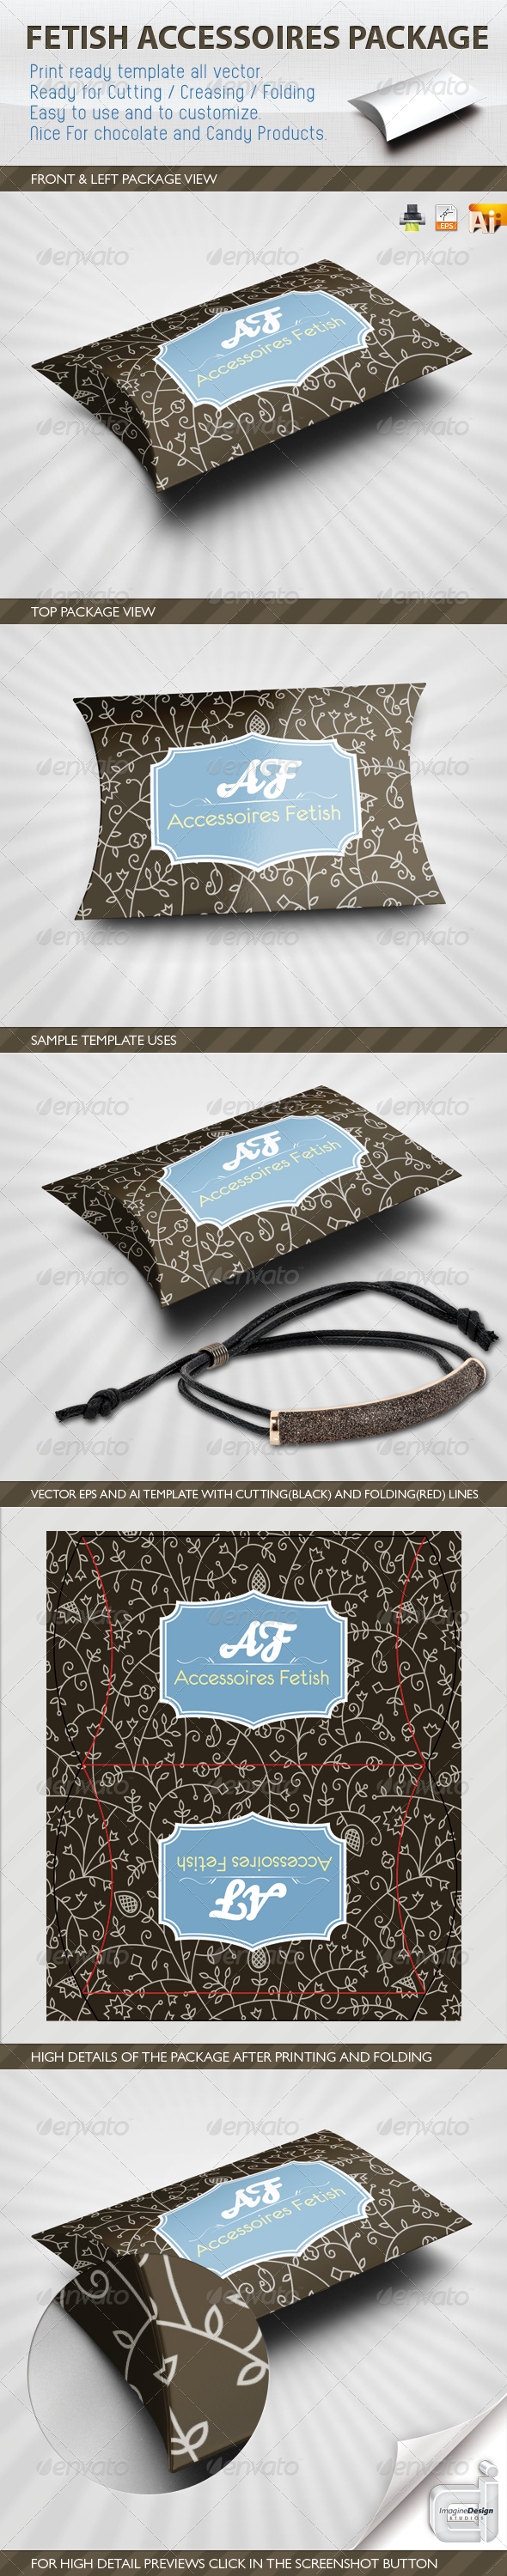 Accessory Fetish Package Template 设计素材下载